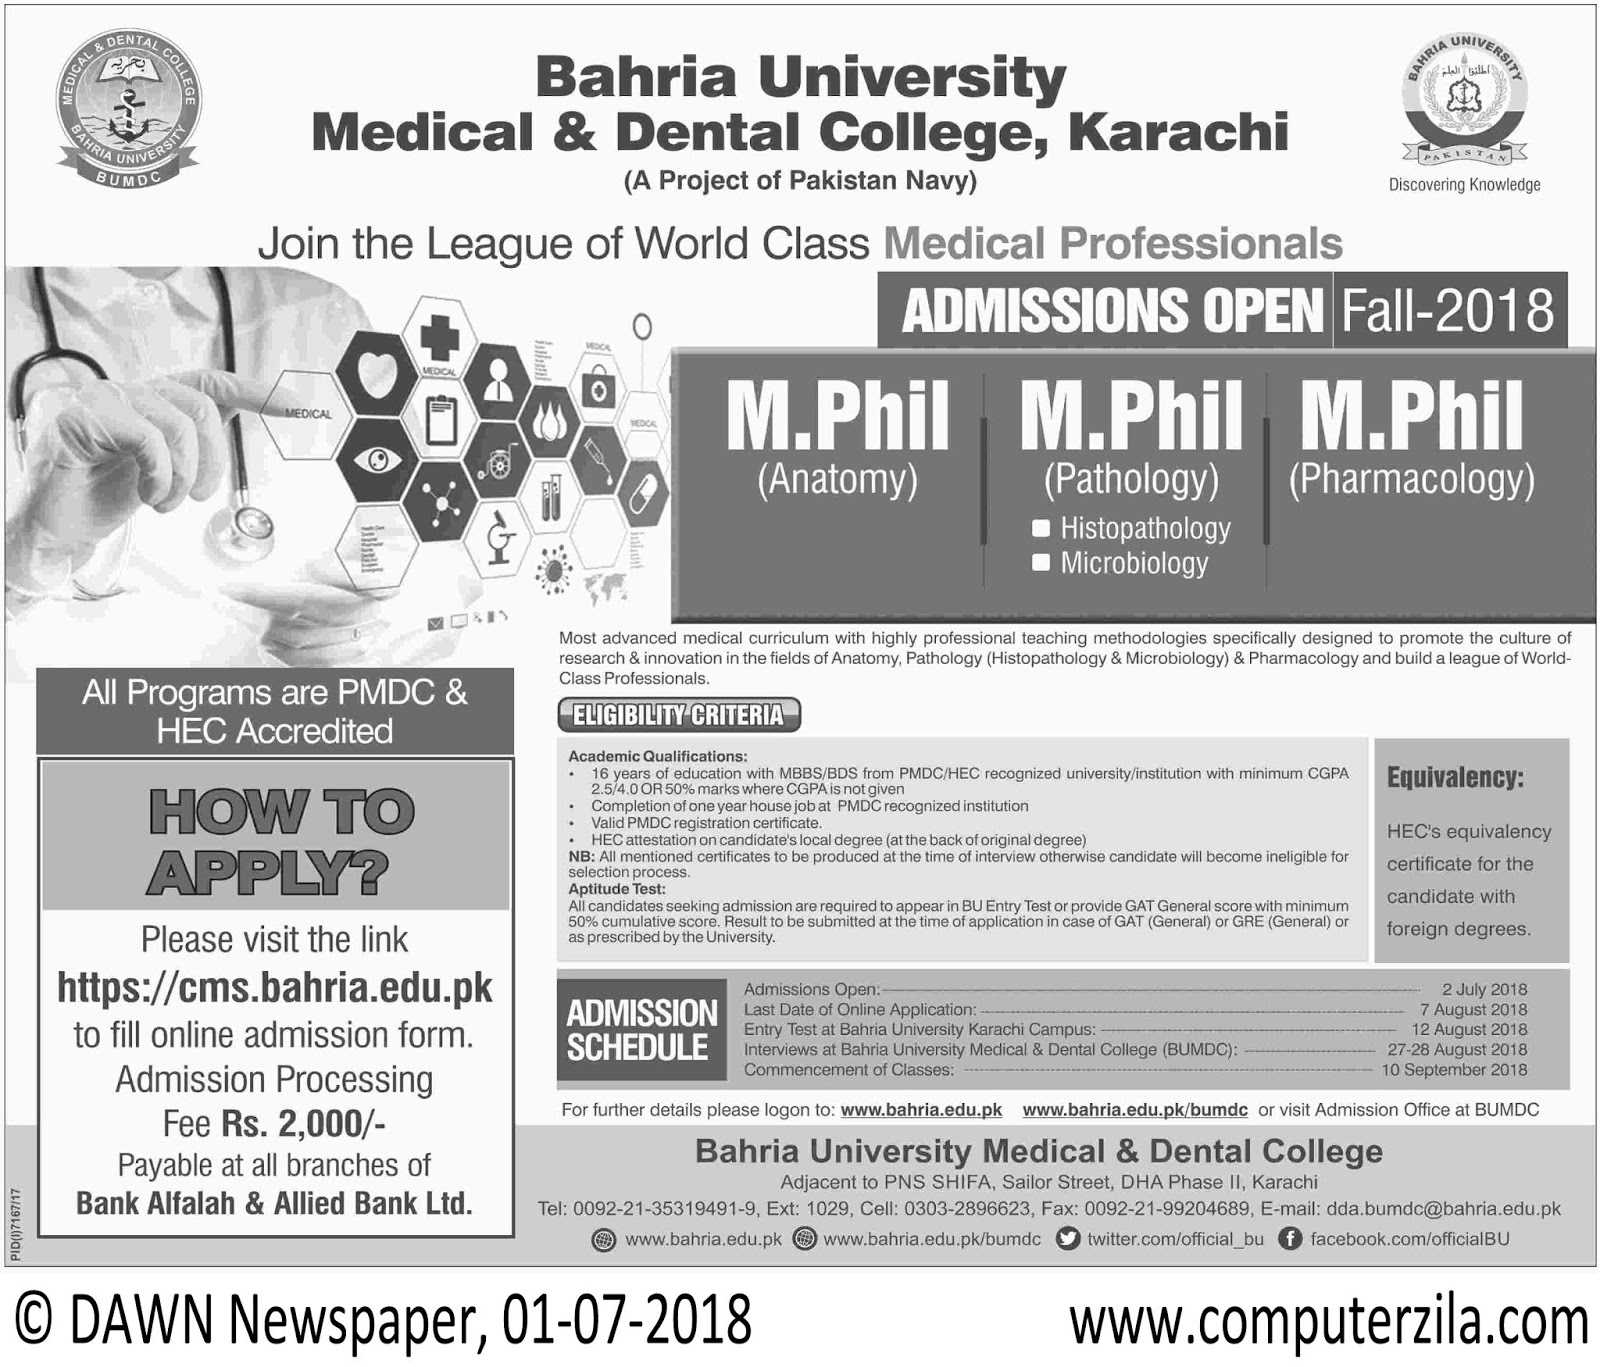 Bahria University Medical & Dental College Admissions Fall 2018